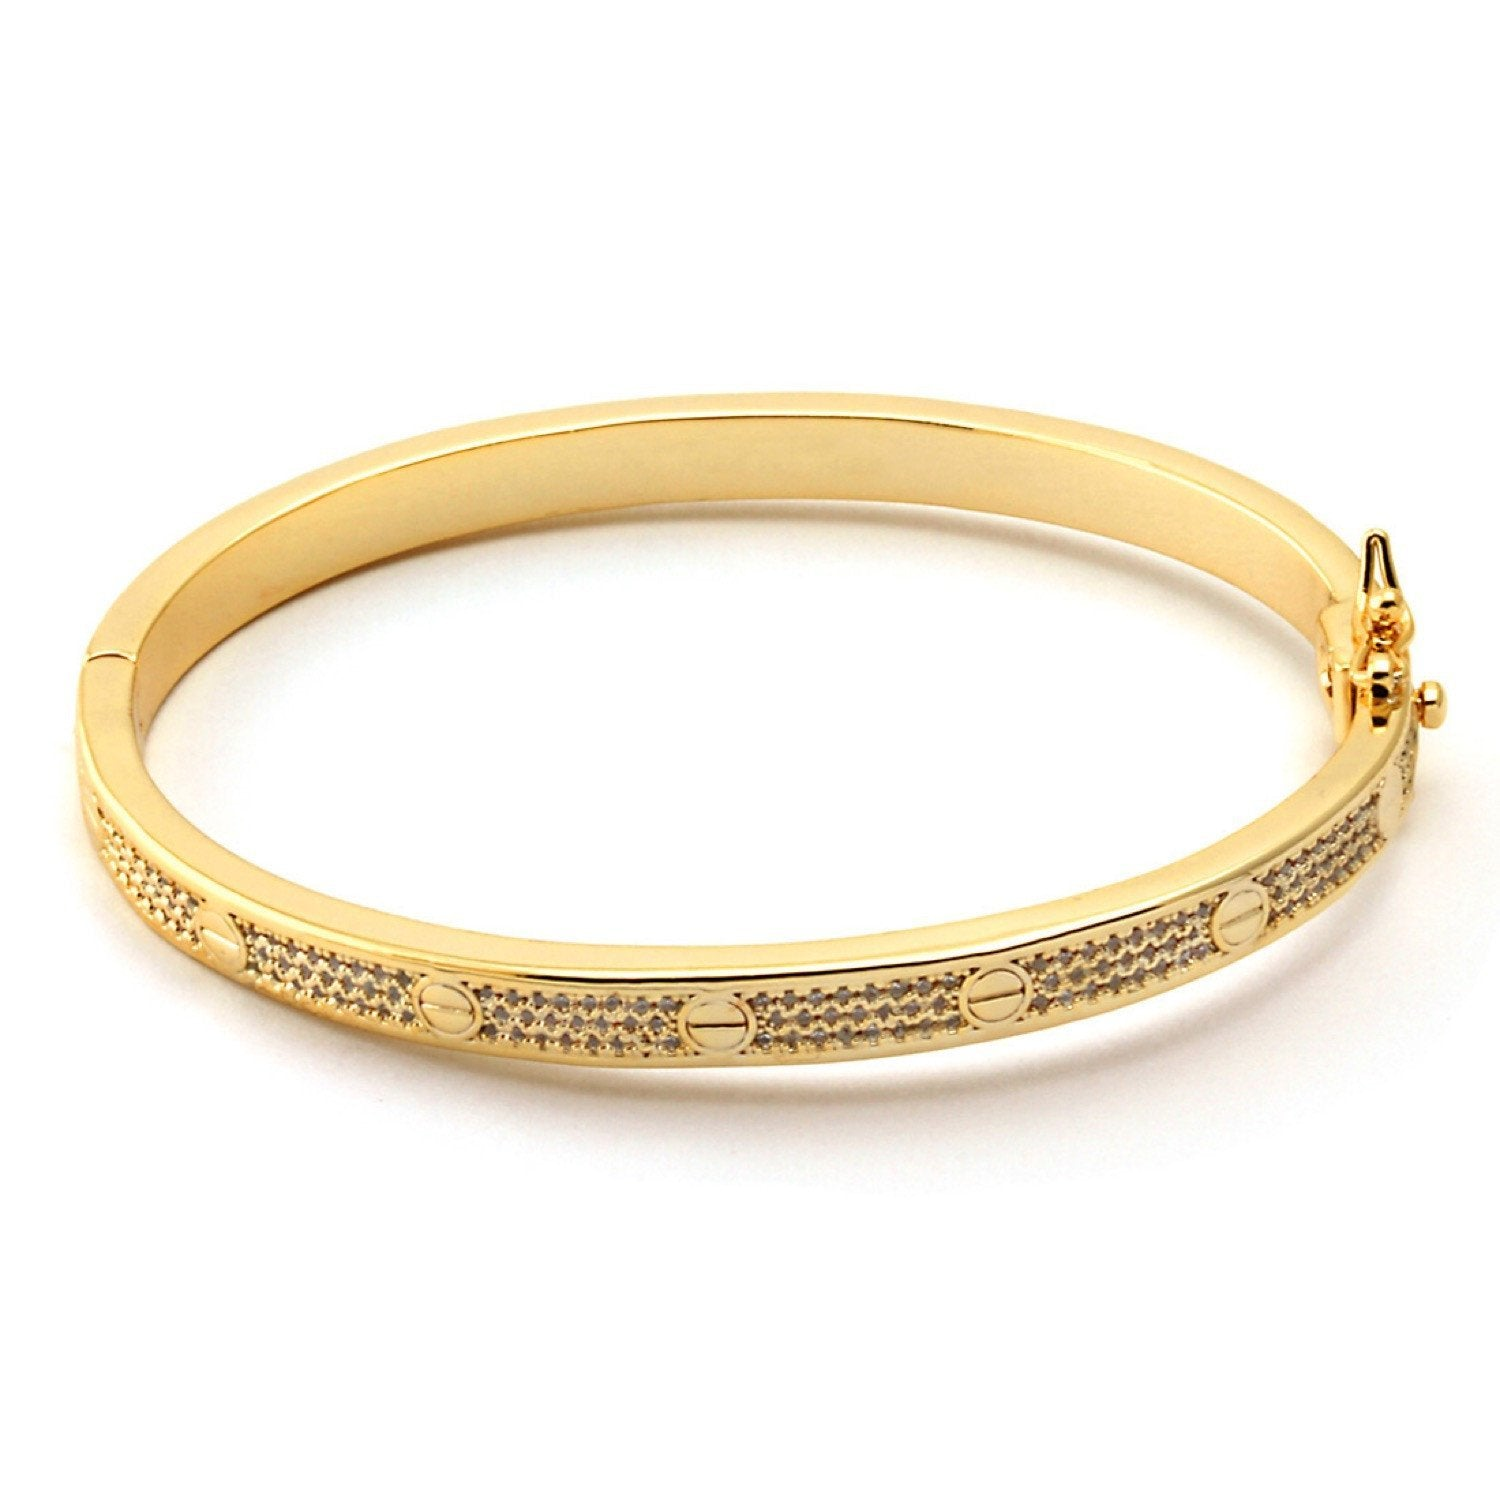 Sale - 14K Gold Flat Head Bangle -   jetcube